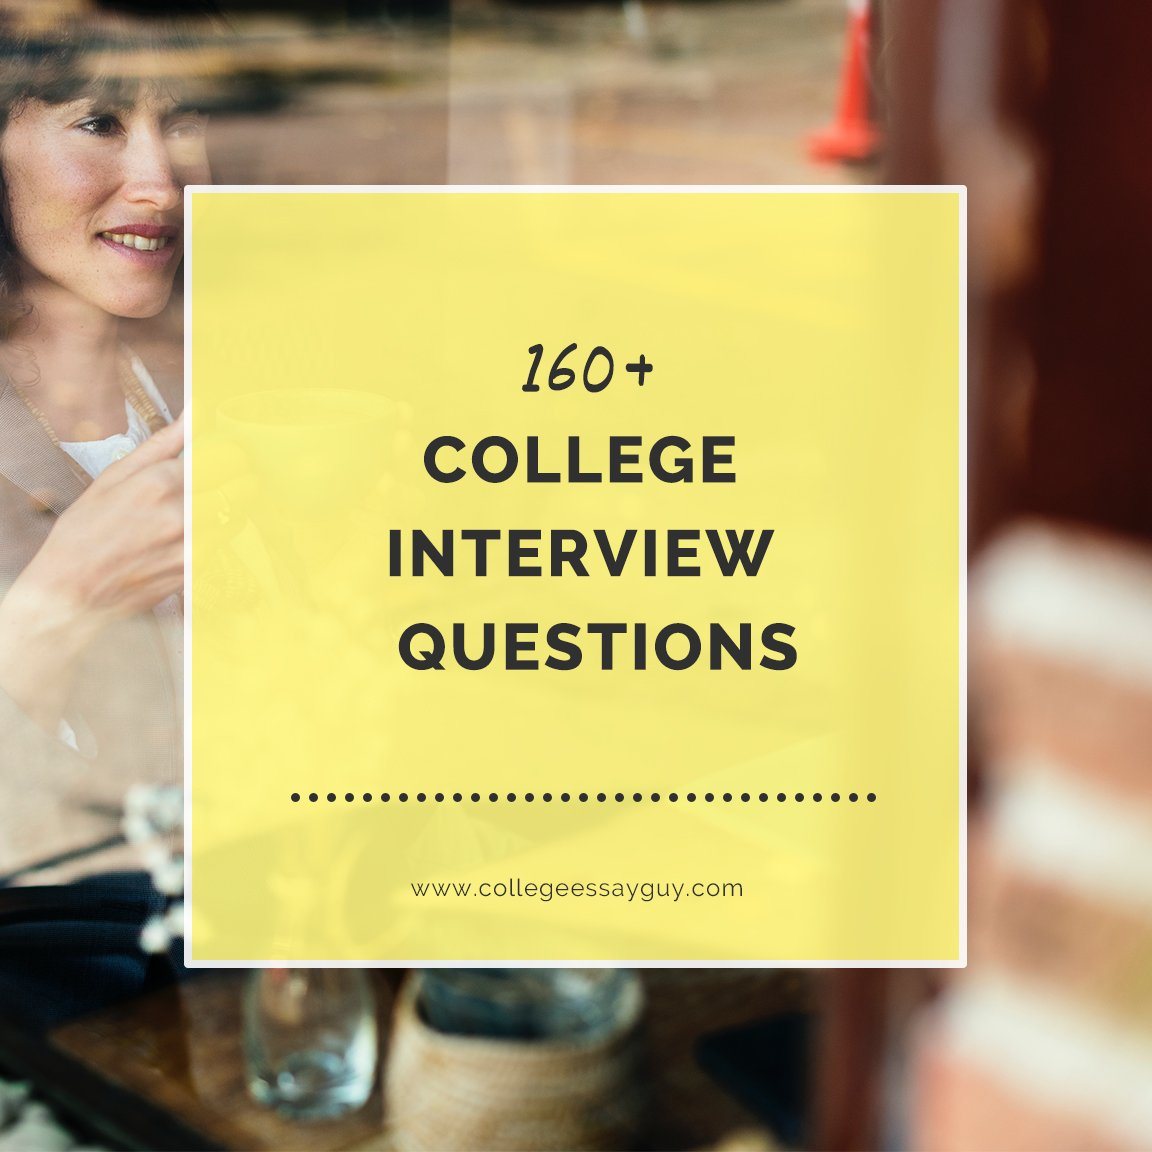 """This ultimate collection of college interview questions will help prepare you for whatever that university will throw at you (including the dreaded """"tell me about yourself"""" question), whether you're being interviewed in person or online. goo.gl/JSLWnF"""